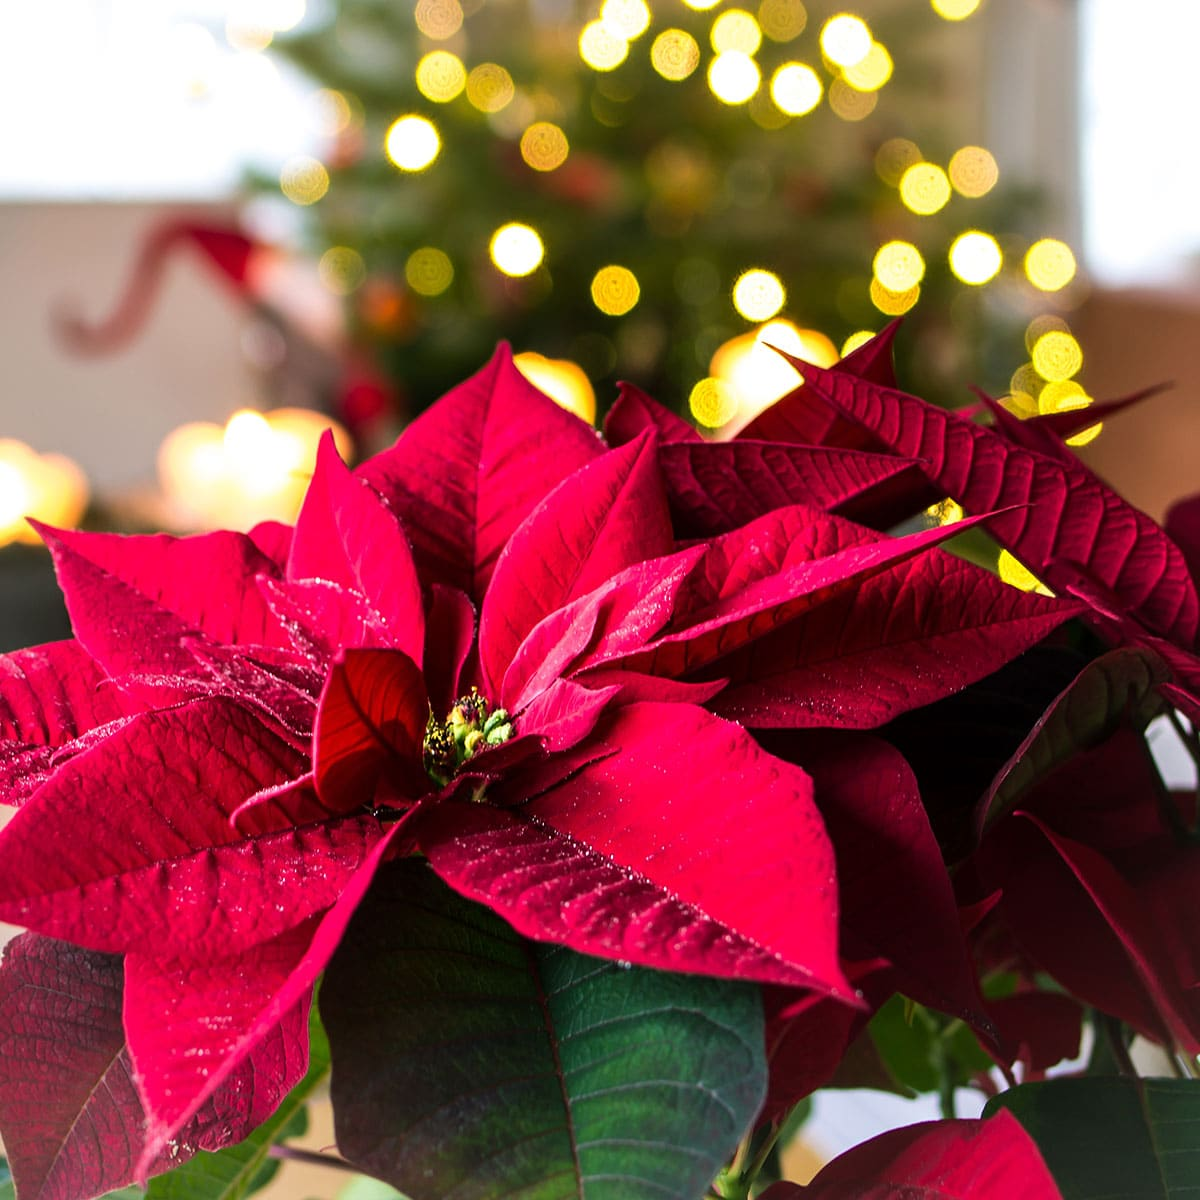 Poinsettias For Christmas 2021 National Poinsettia Day December 12 2021 National Today